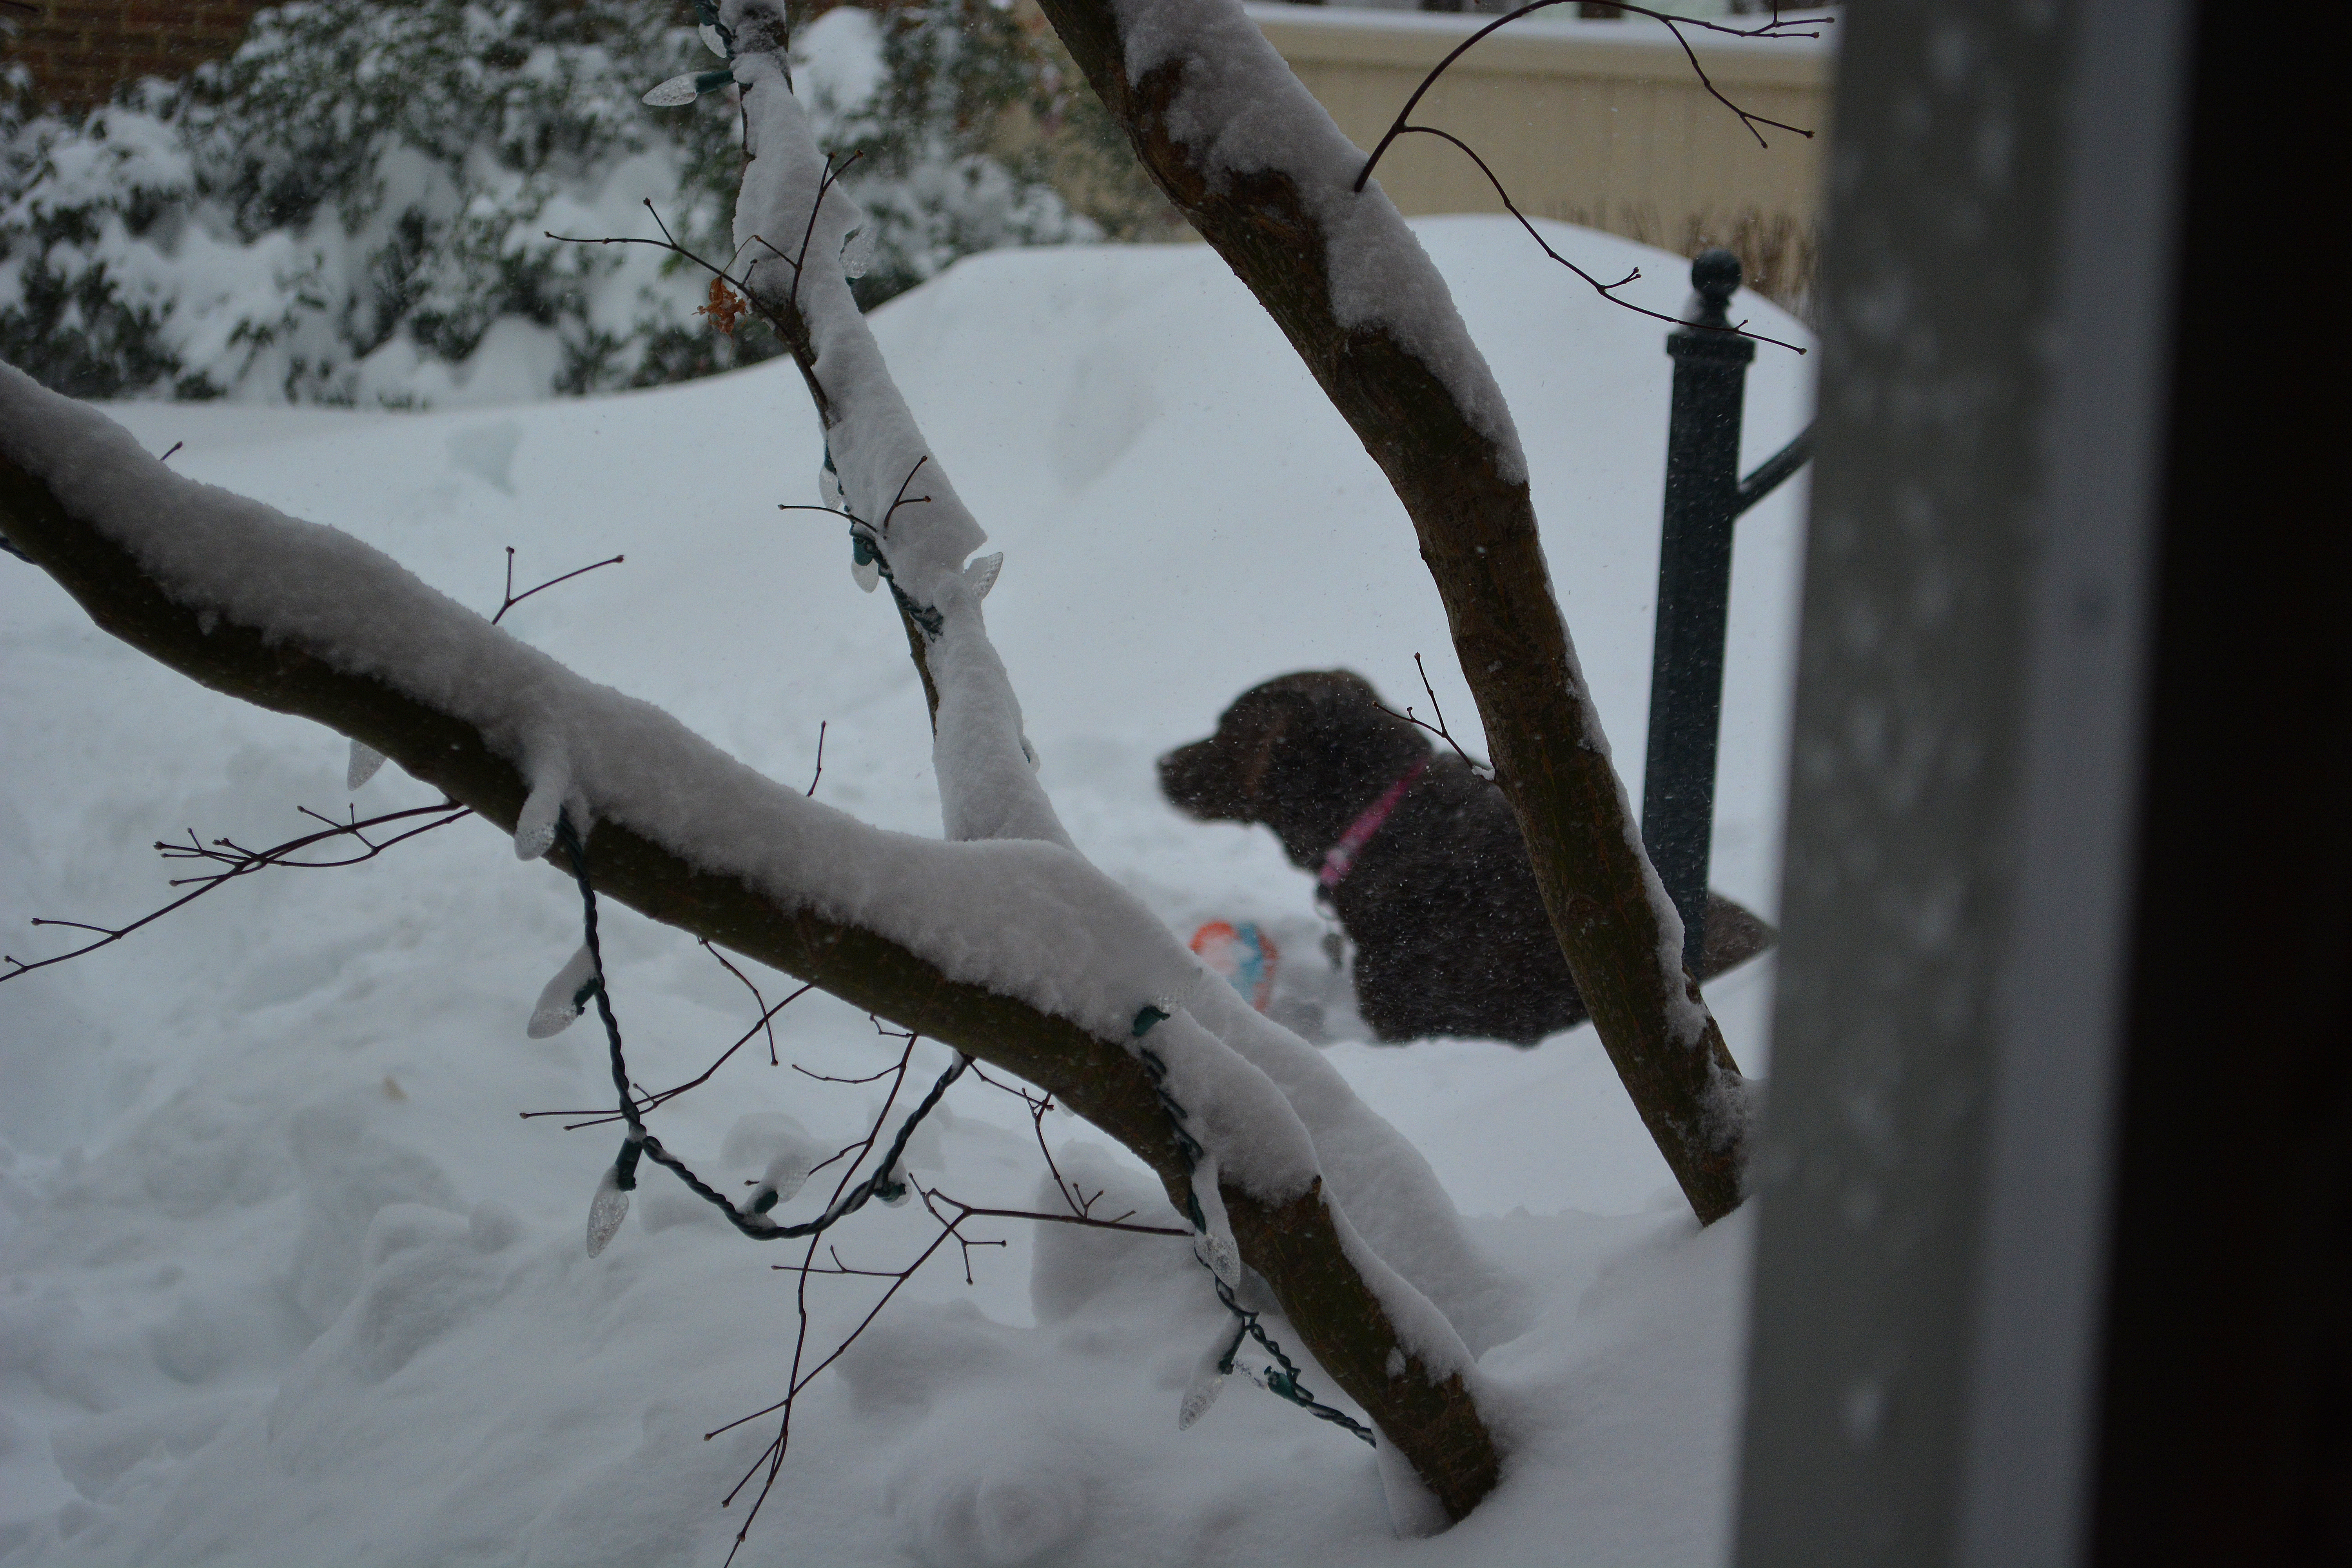 dogsinsnow2016enhance2